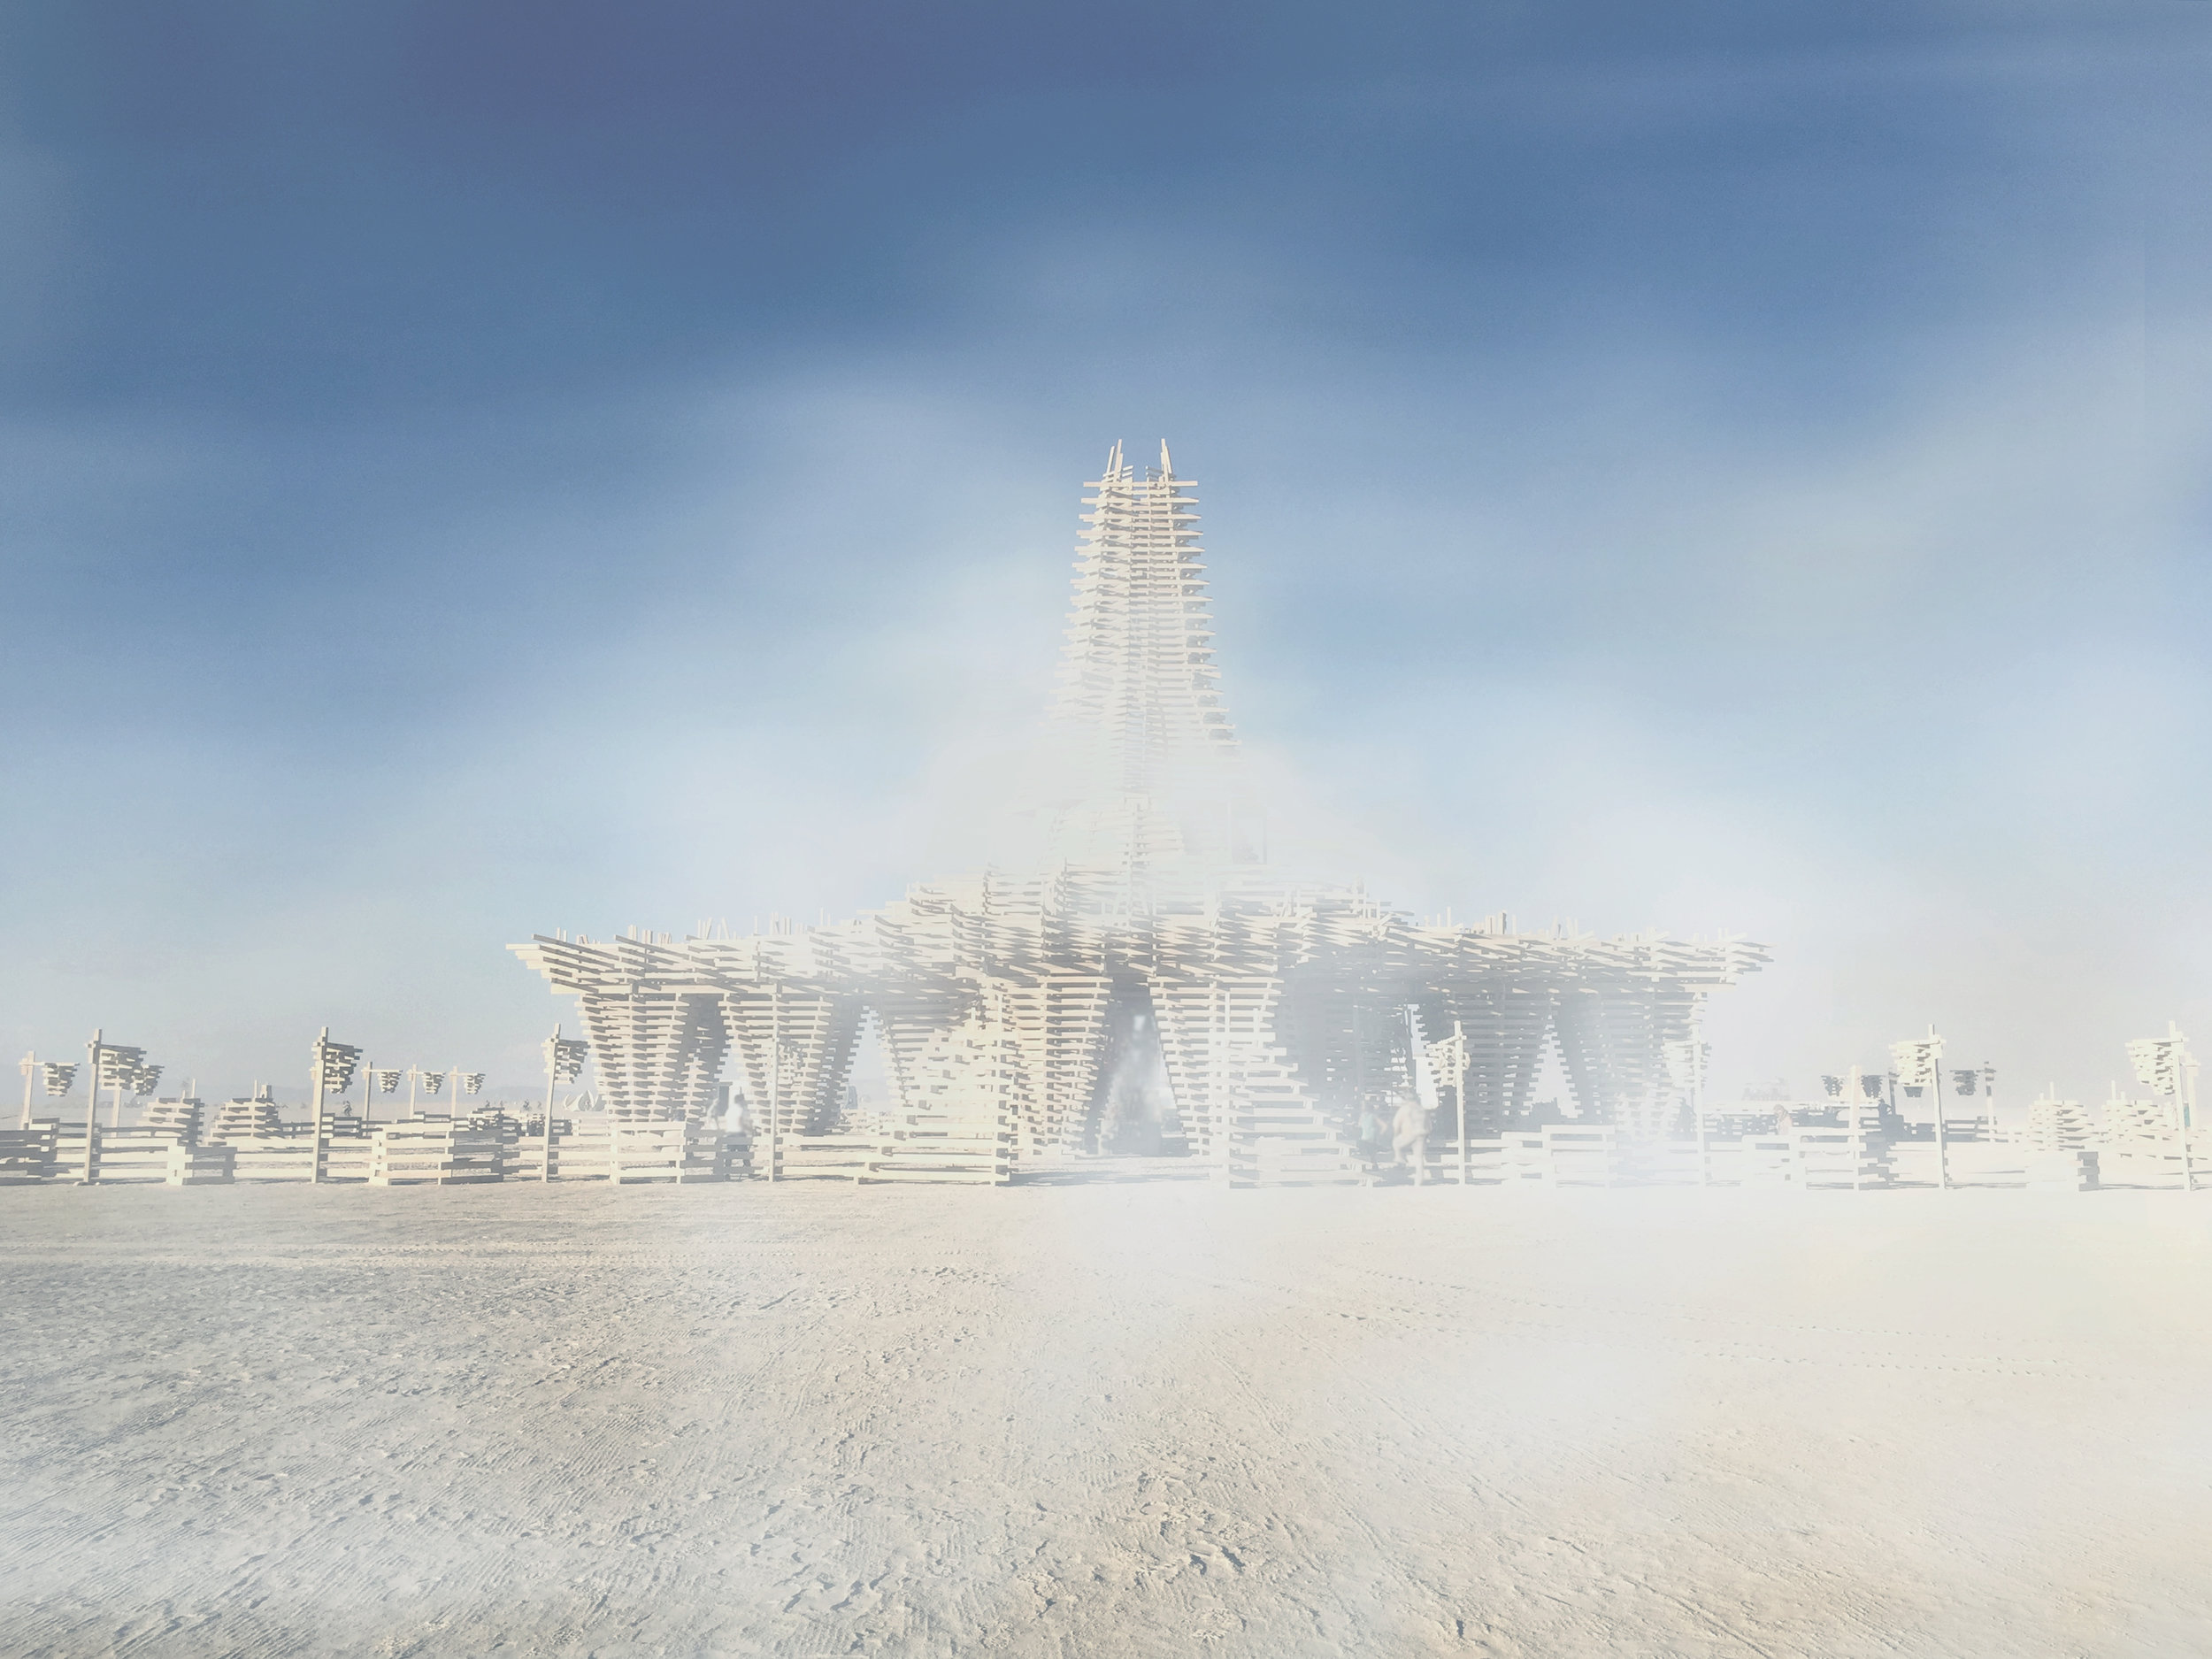 Burning_Man_Temple-Exterior_AV.jpg